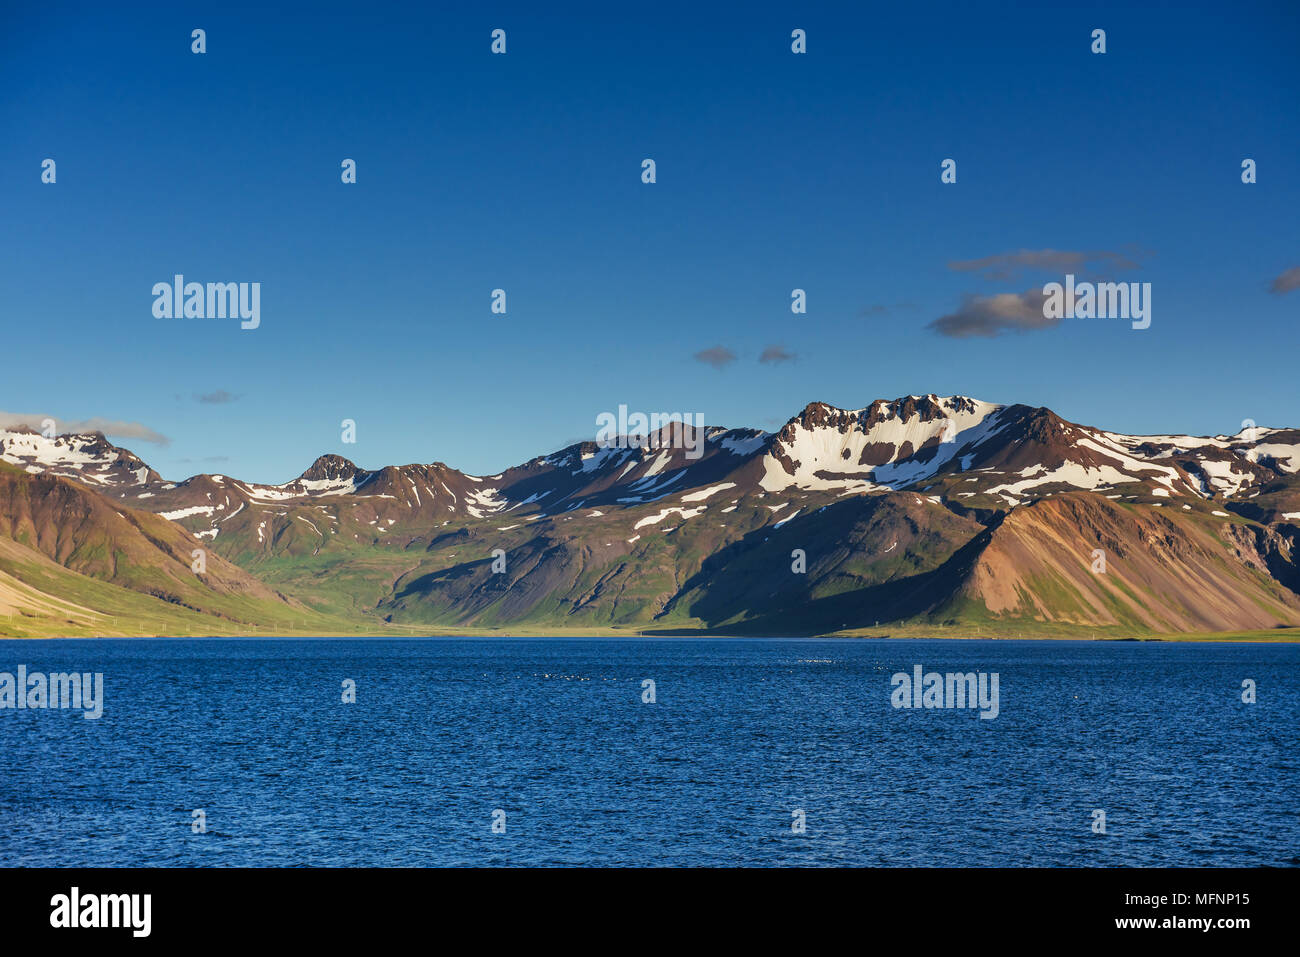 Mountains and volcanic lava sand dunes by the sea in Stokksness, Iceland. The brown bushes are lavender plants desiccated in the winter but will flourish and bloom when spring comes - Stock Image